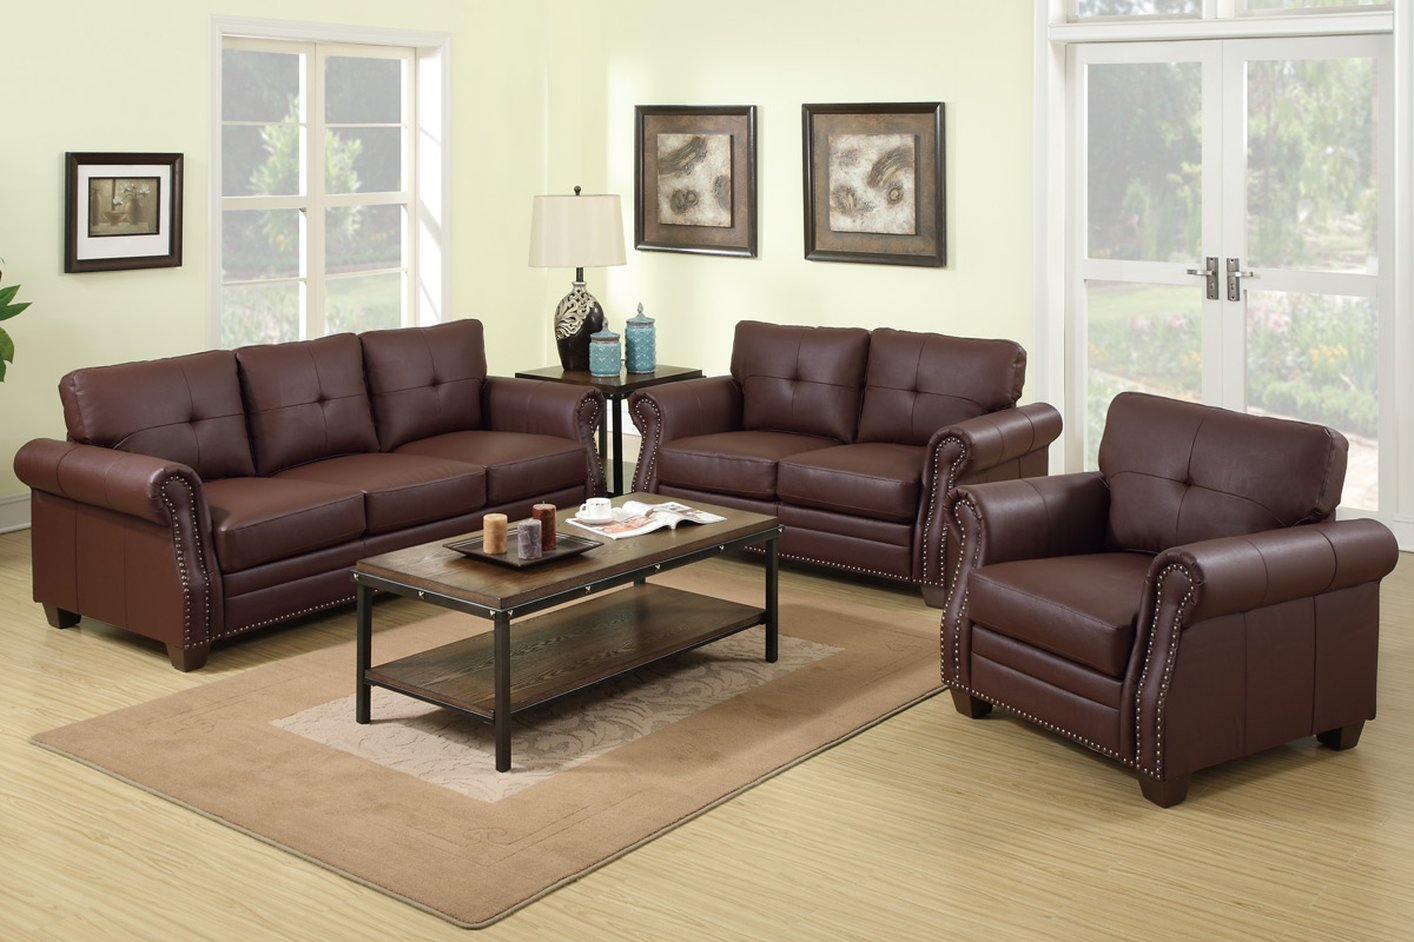 poundex baron f7799 brown leather sofa and loveseat set steal a sofa furniture outlet los